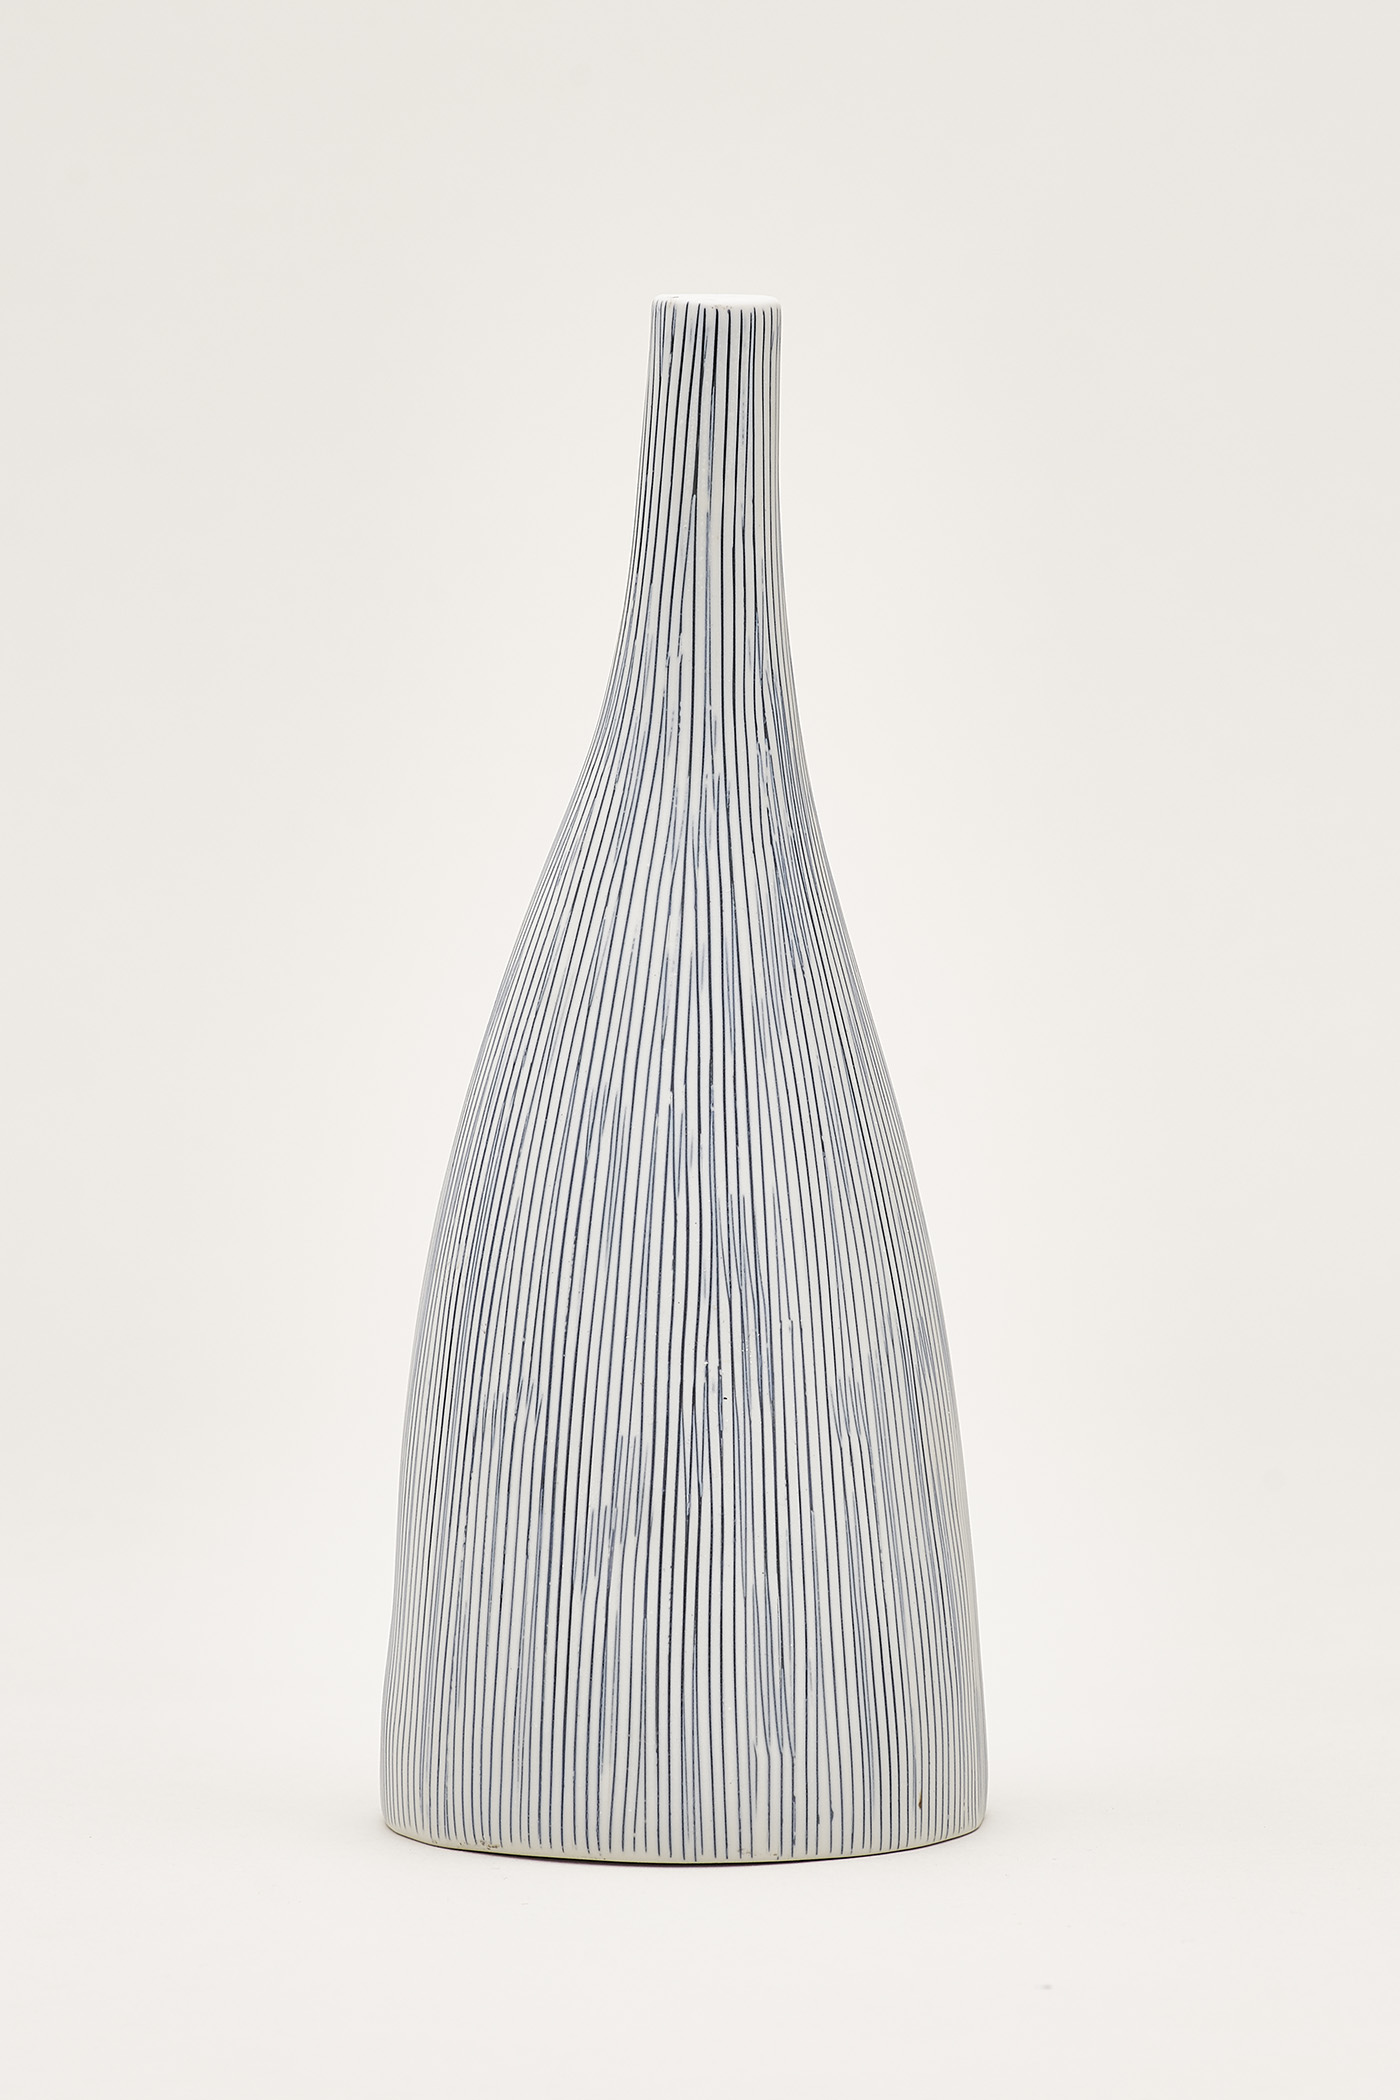 Hiro Lined Drop Vase